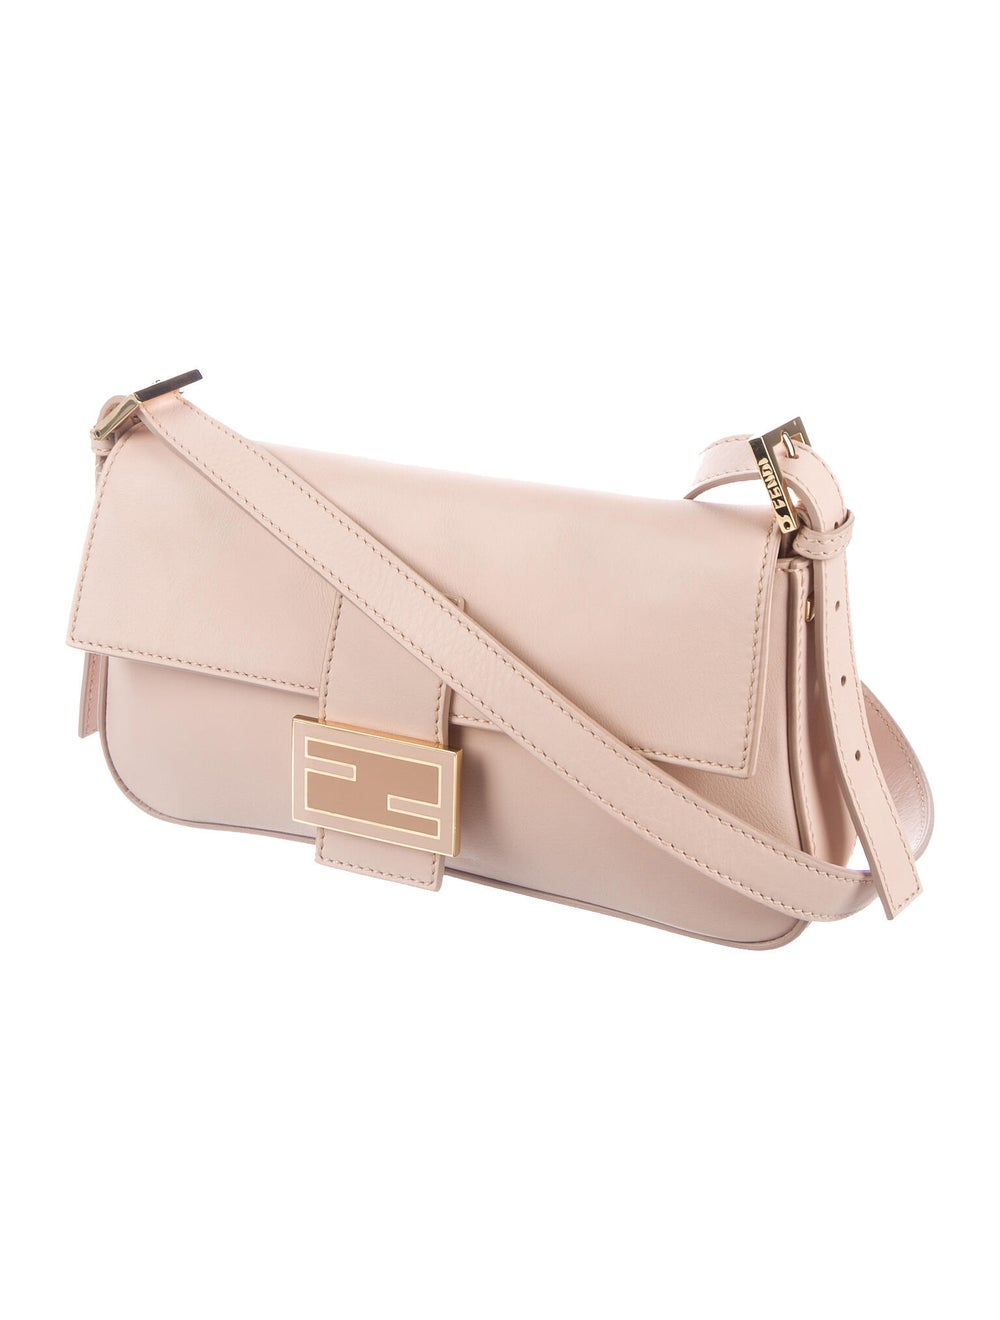 Fendi Smooth Leather Baguette Pink - image 3